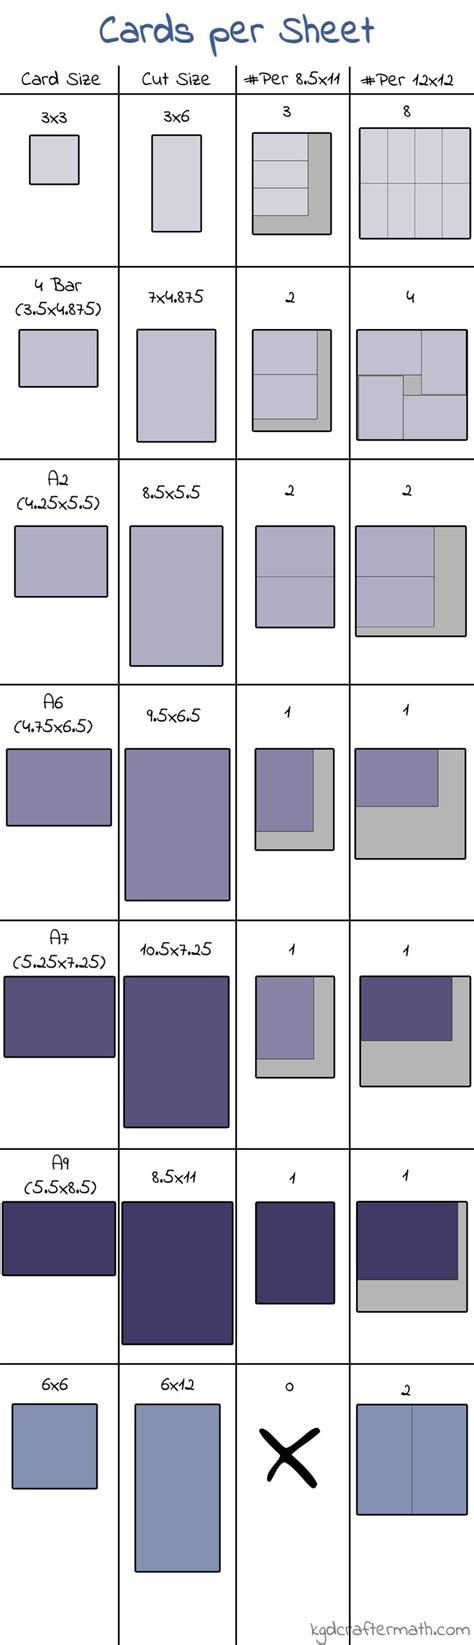 template size for cards 50 best images about card measurements on